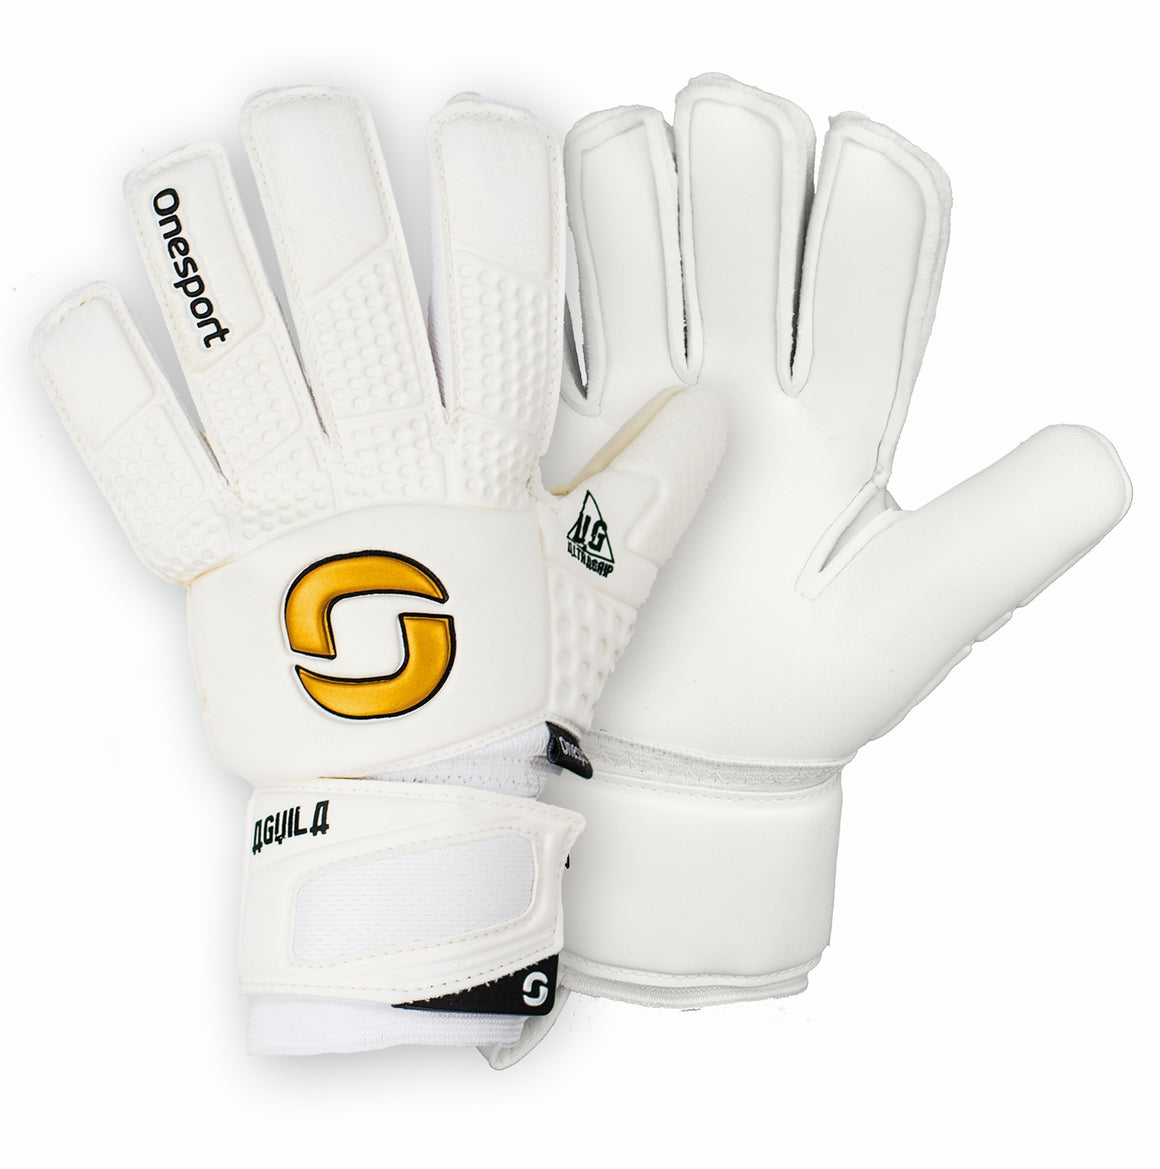 Onesport Aguila Junior Goalkeeper Gloves White Out